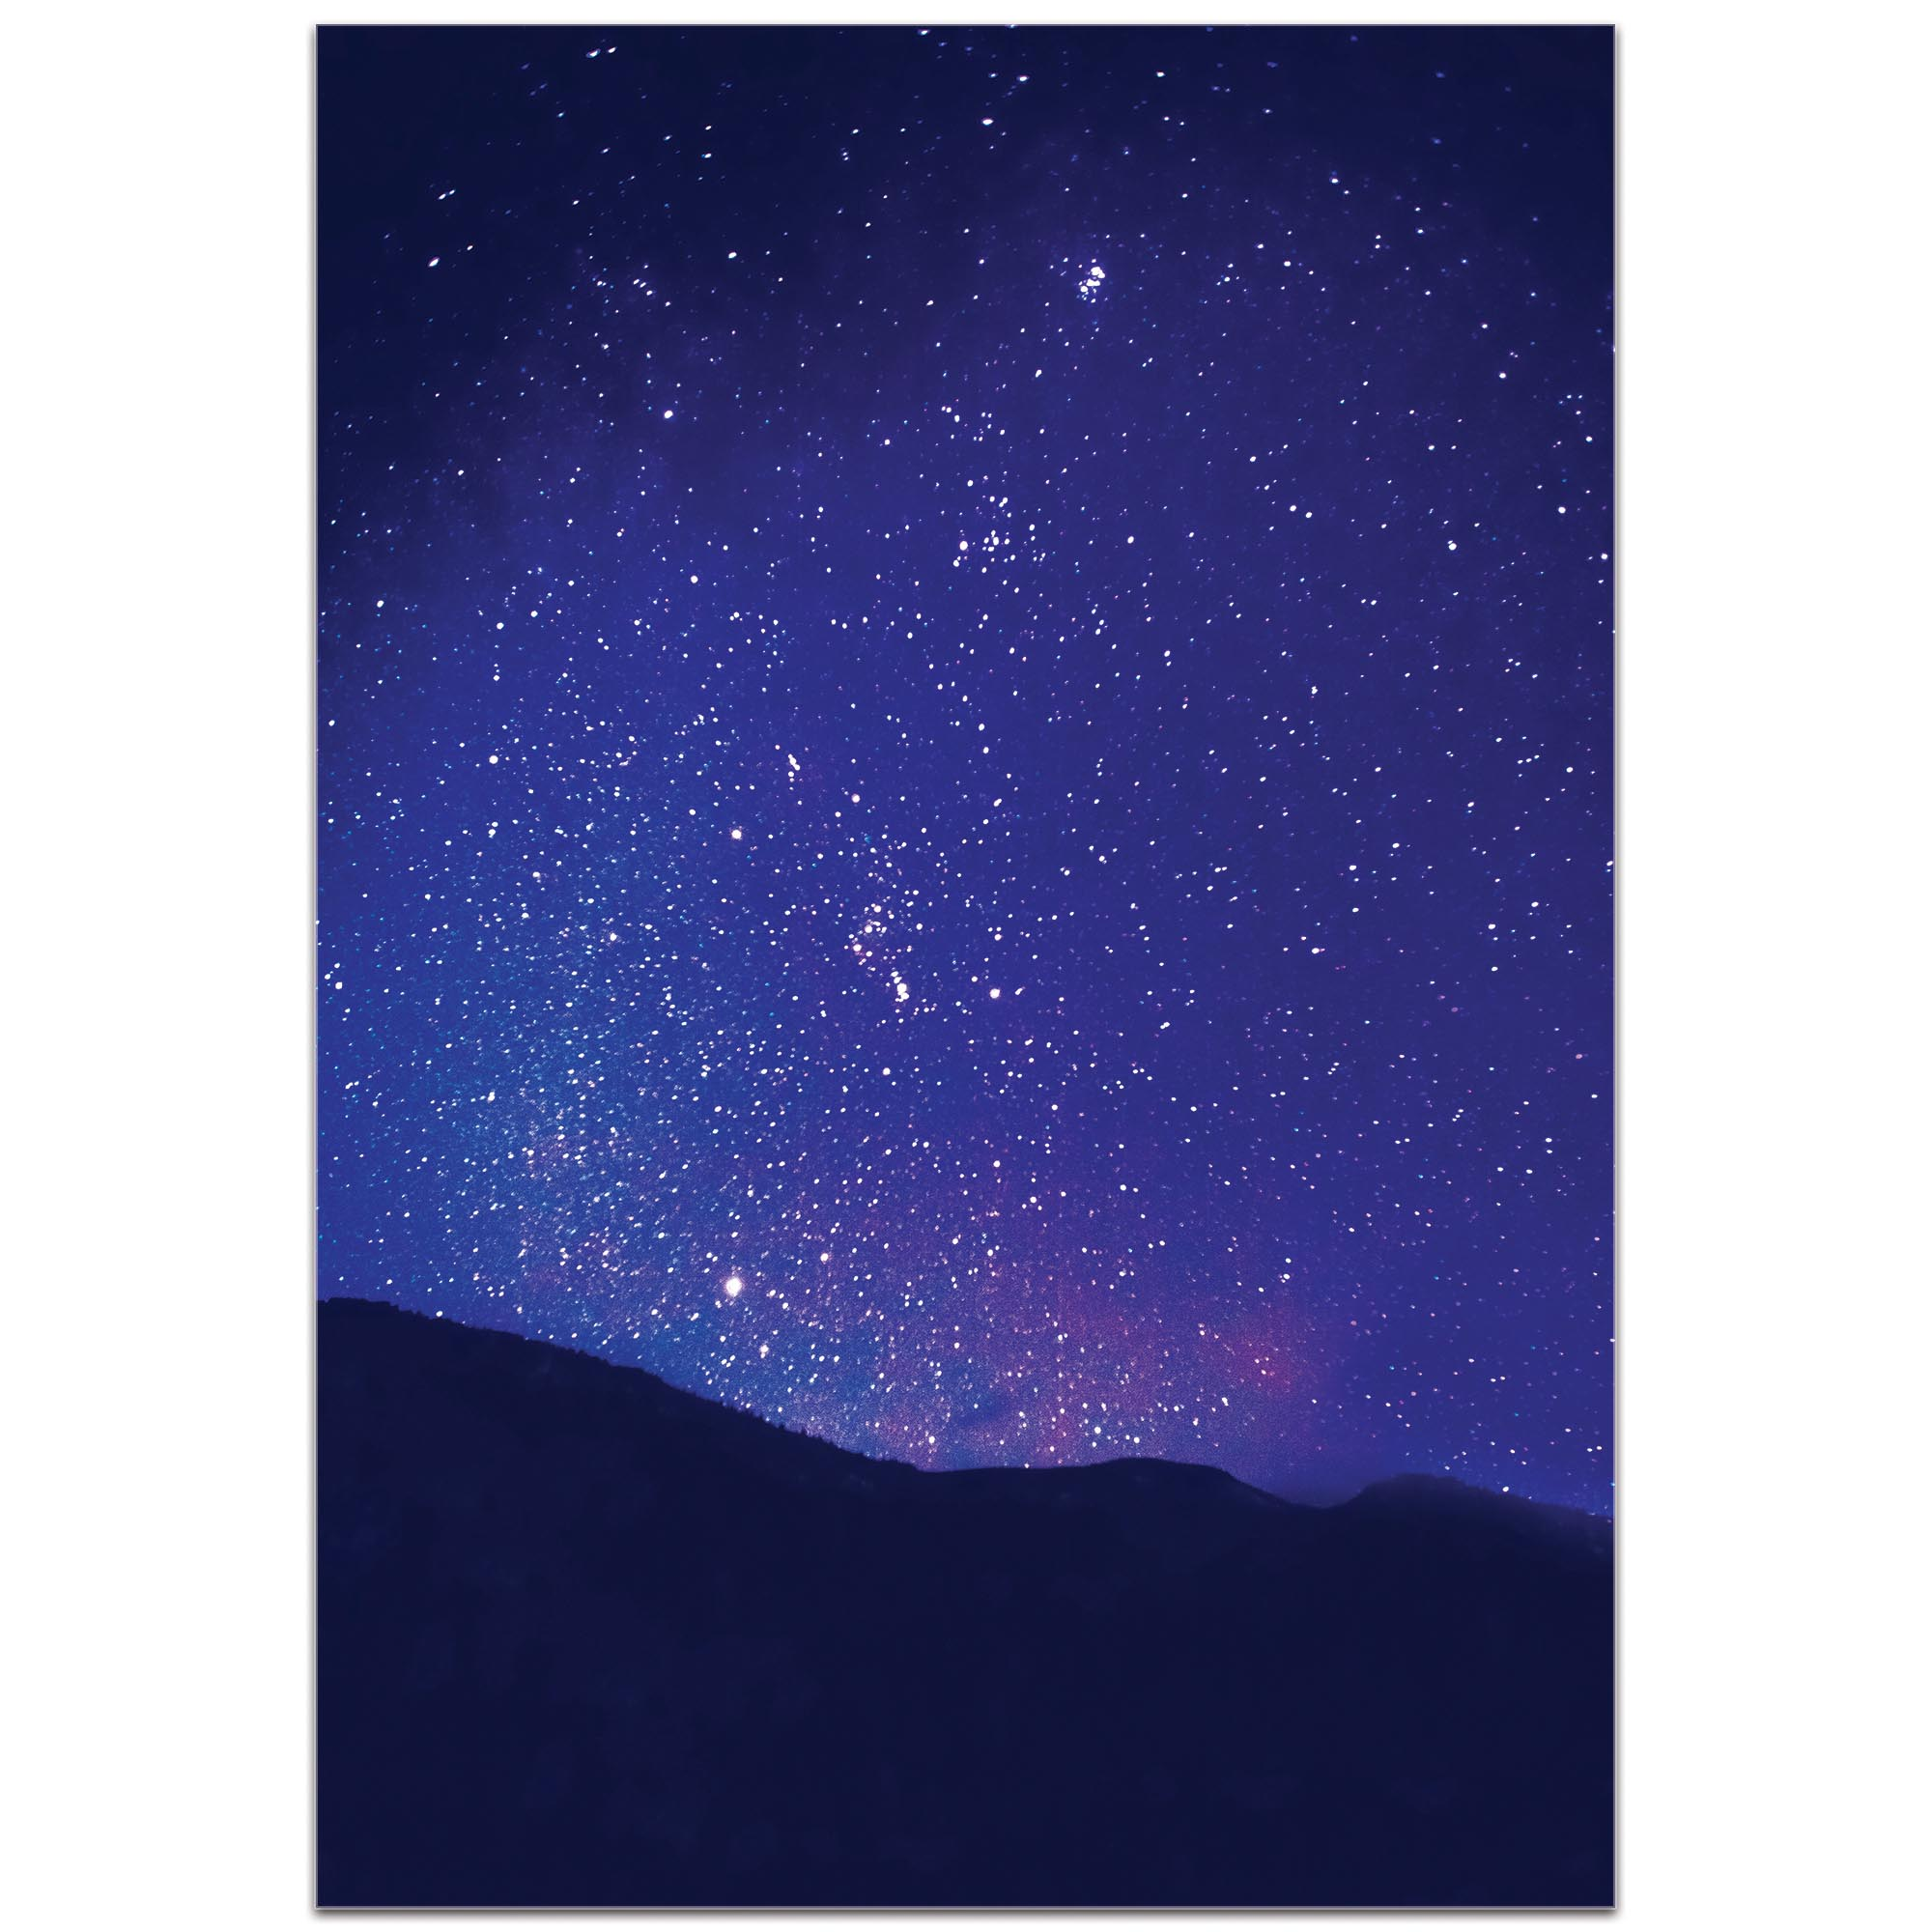 Nature Photography 'Satin Sky' - Night Sky Art on Metal or Plexiglass - Image 2